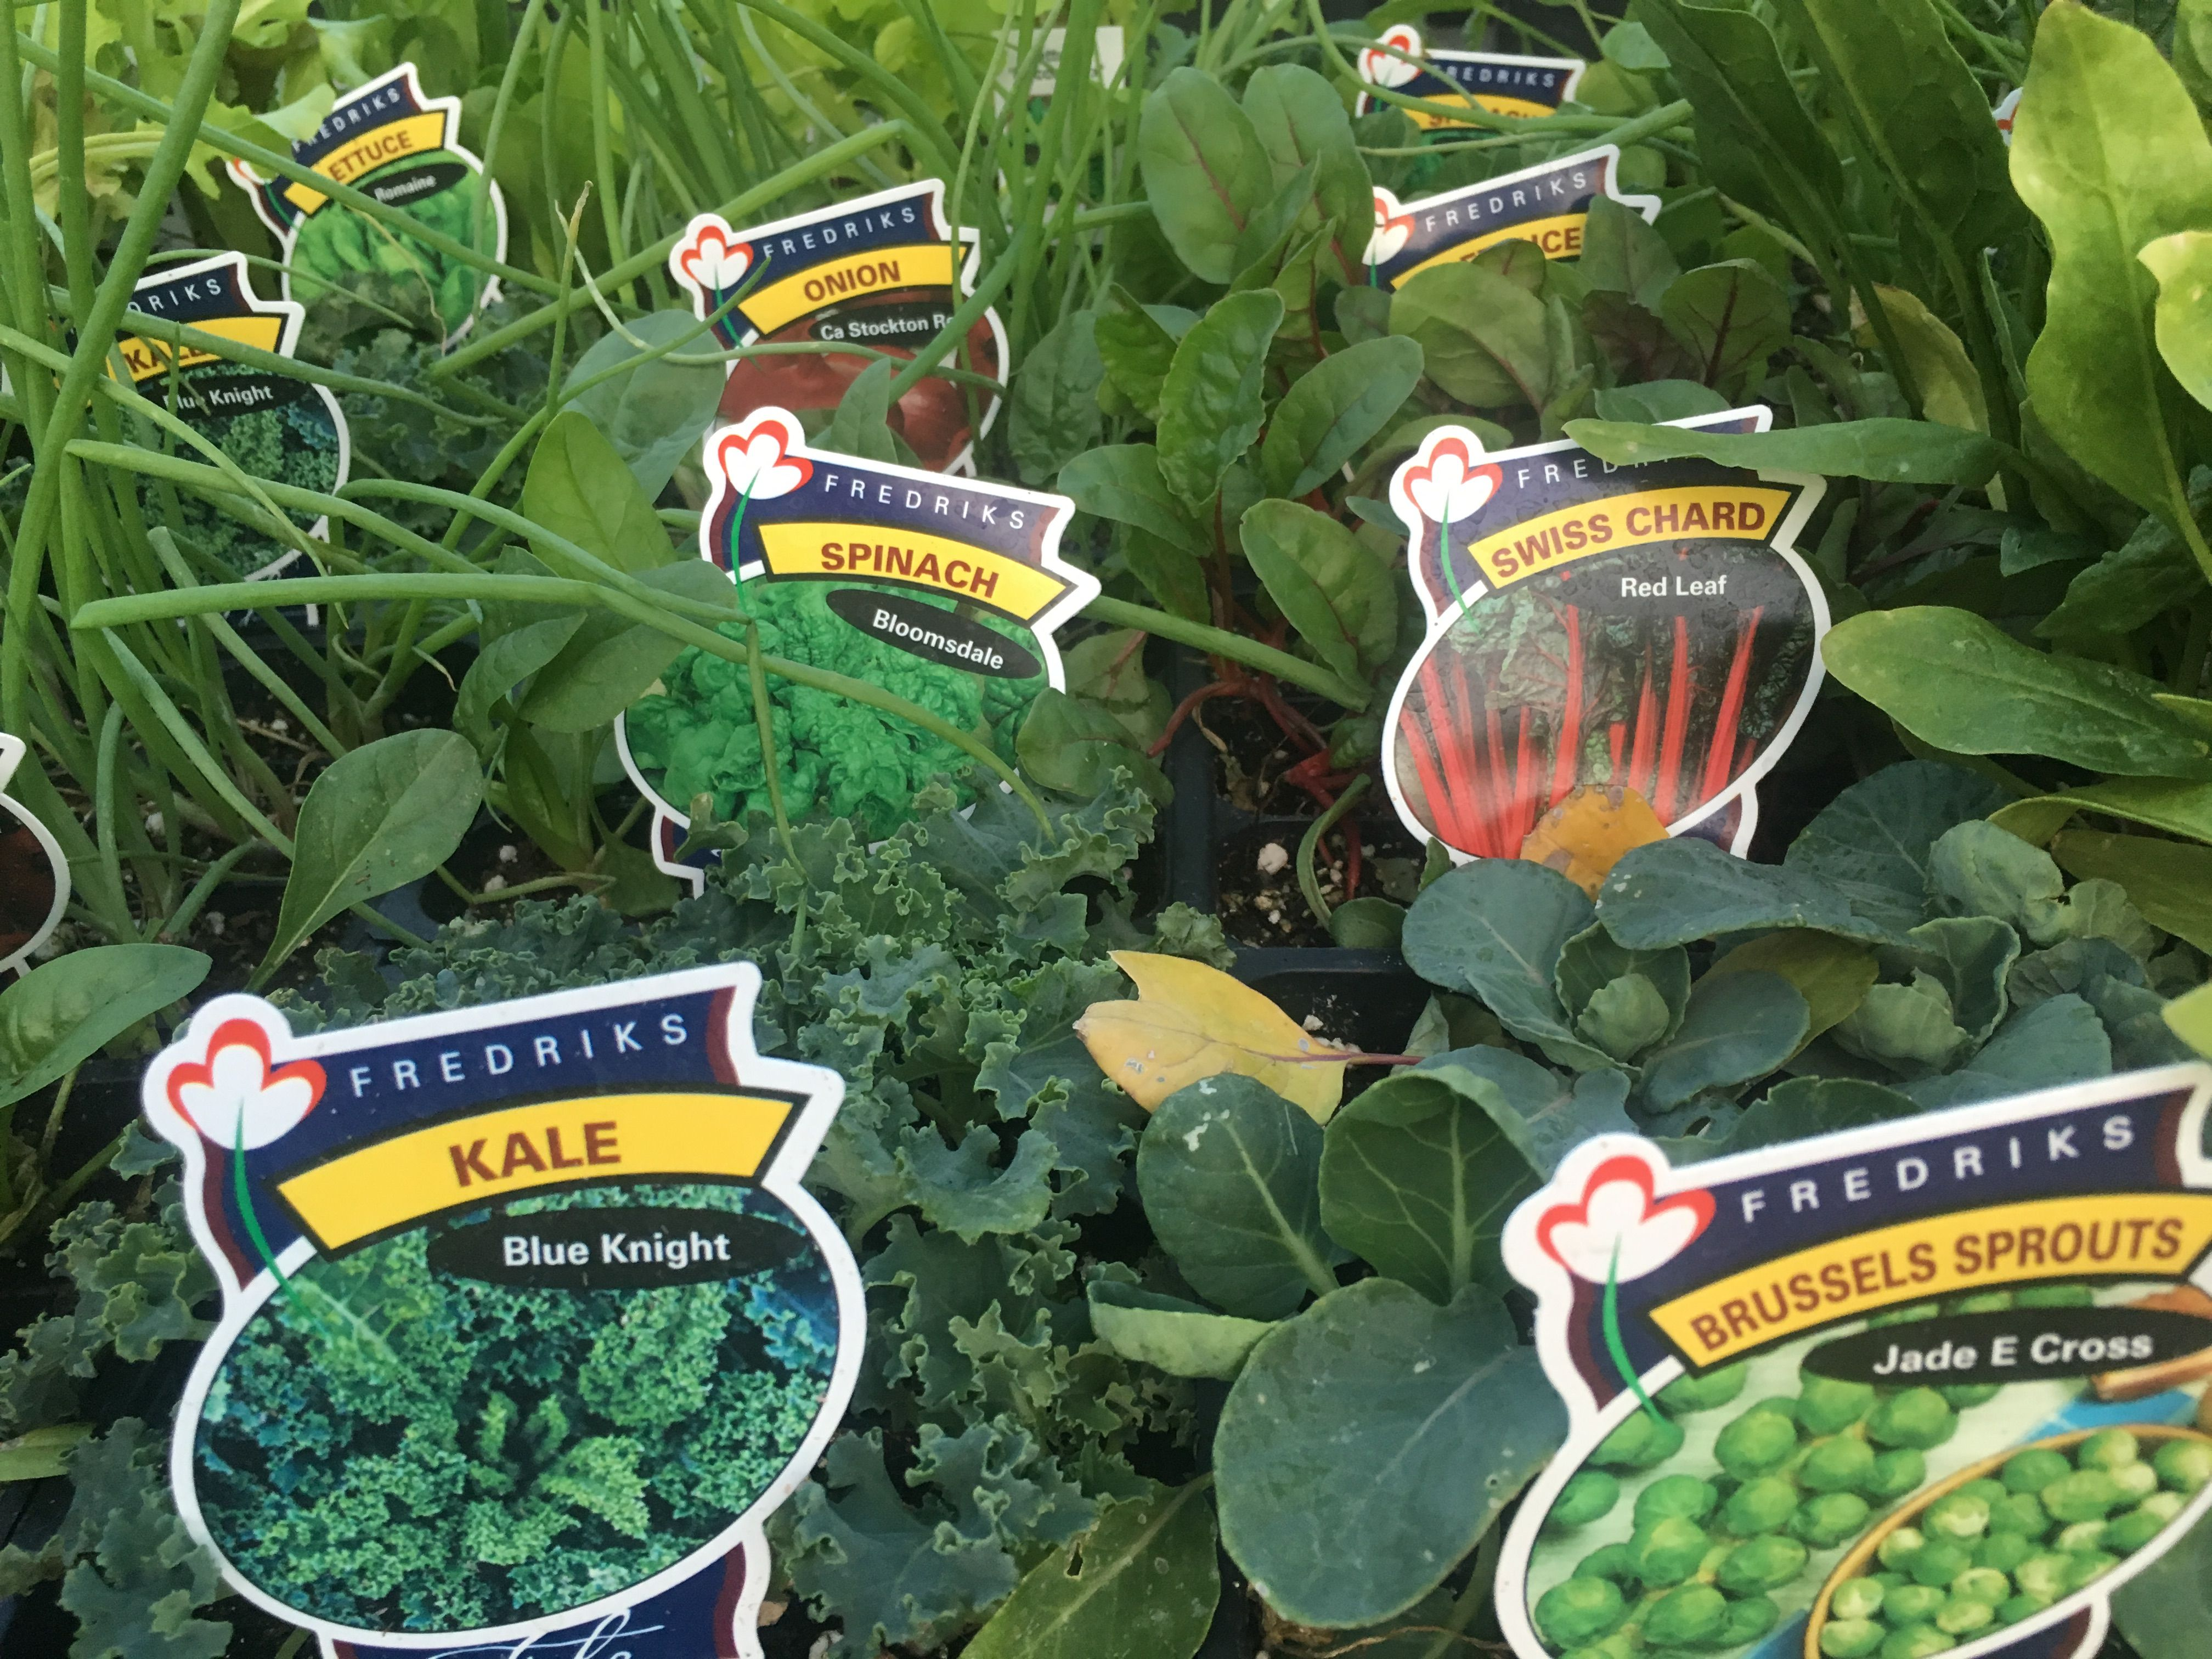 plant a fall winter vegetable garden now seeds and plants you can